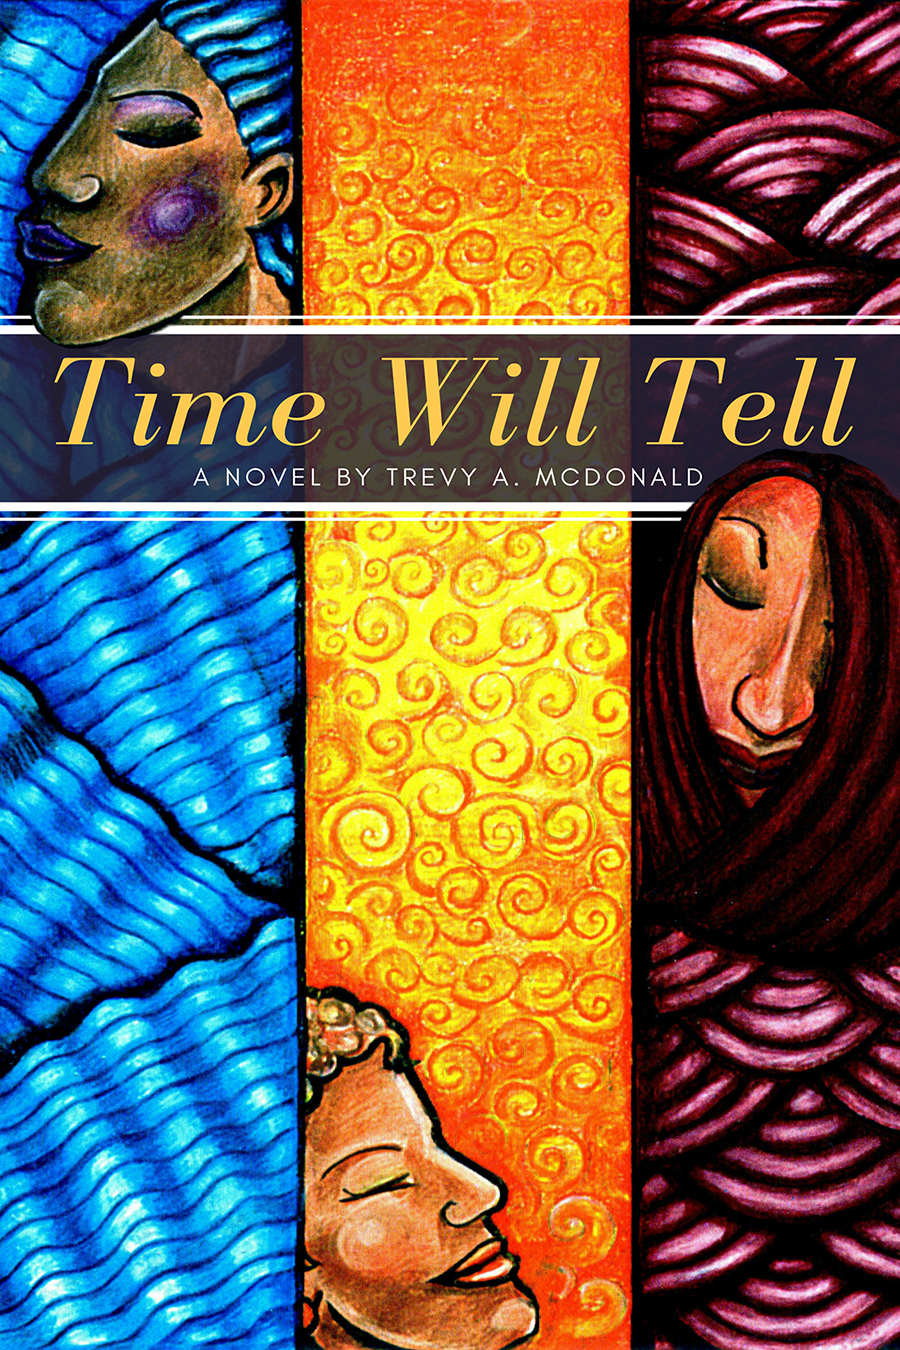 time will tell title art final for nook